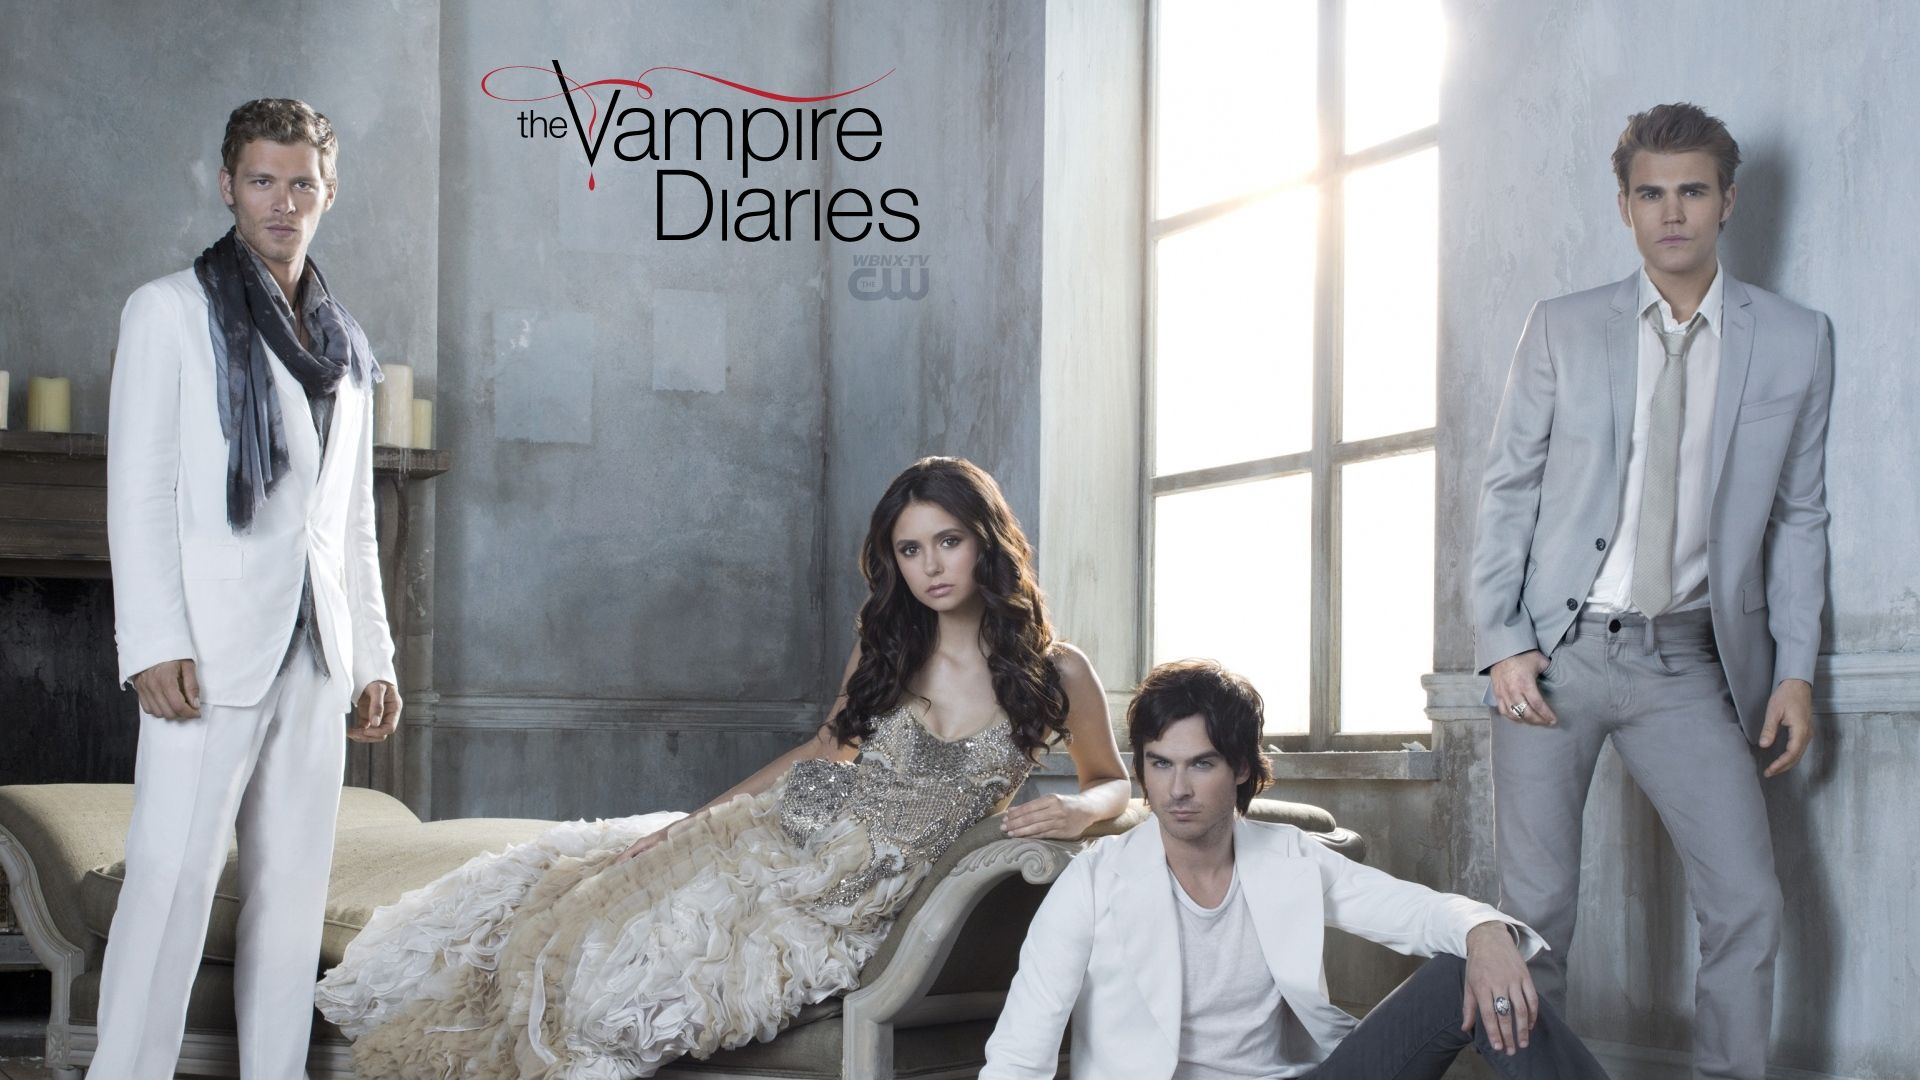 Download Wallpaper 1920x1080 The vampire diaries, Nina dobrev ...